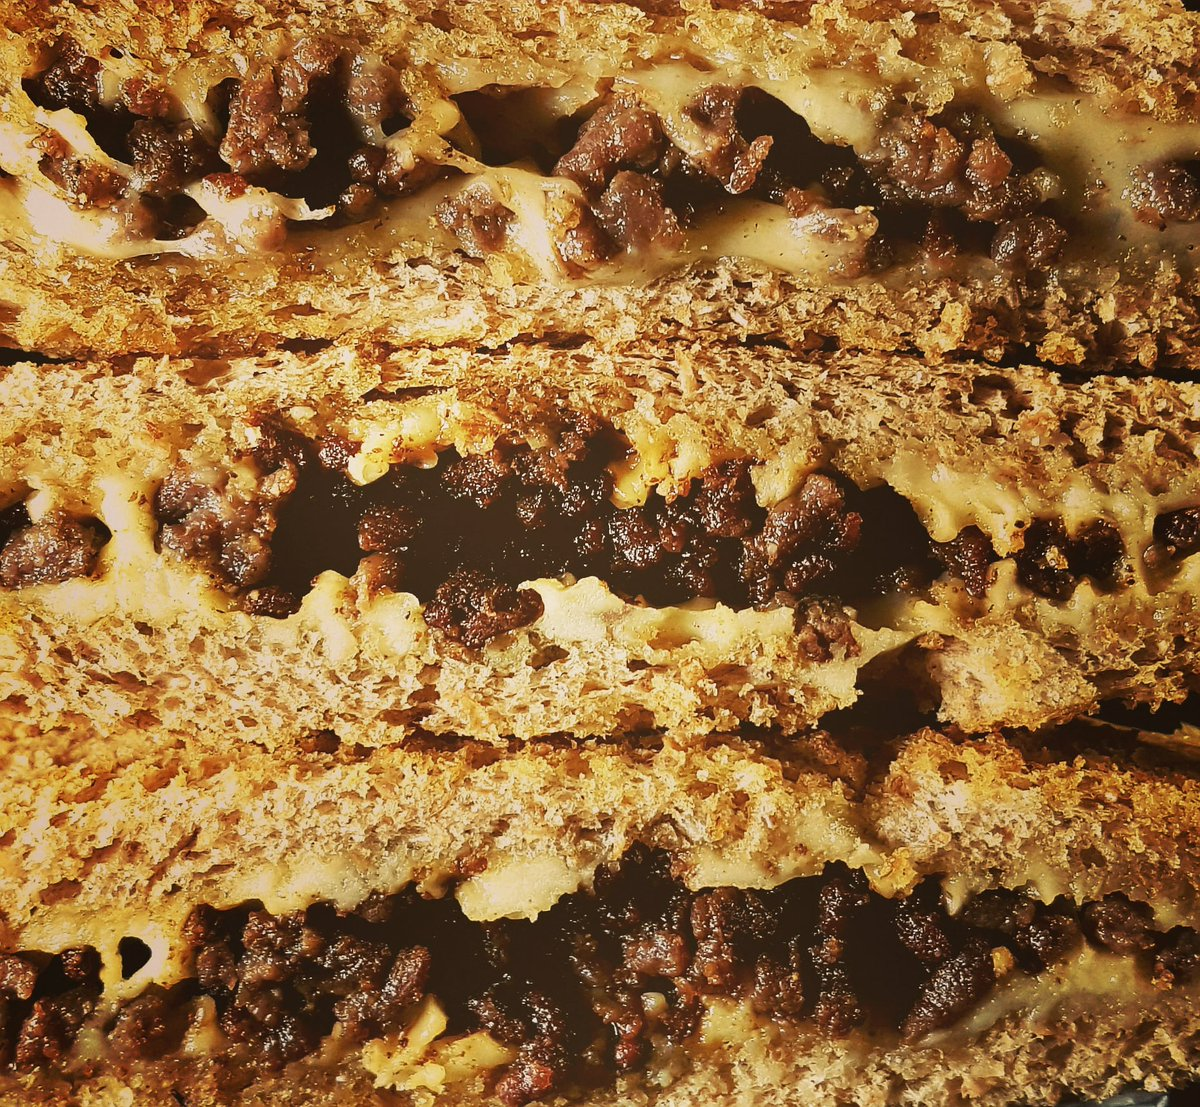 Spicy grilled Cheese/minced meat sandwiches for lunch. Easy, fast and very tasty!  #grilled #sandwich #meat #cheese #spicysandwich #grilledcheese #delicious #homemade https://t.co/6doJNHLE5h